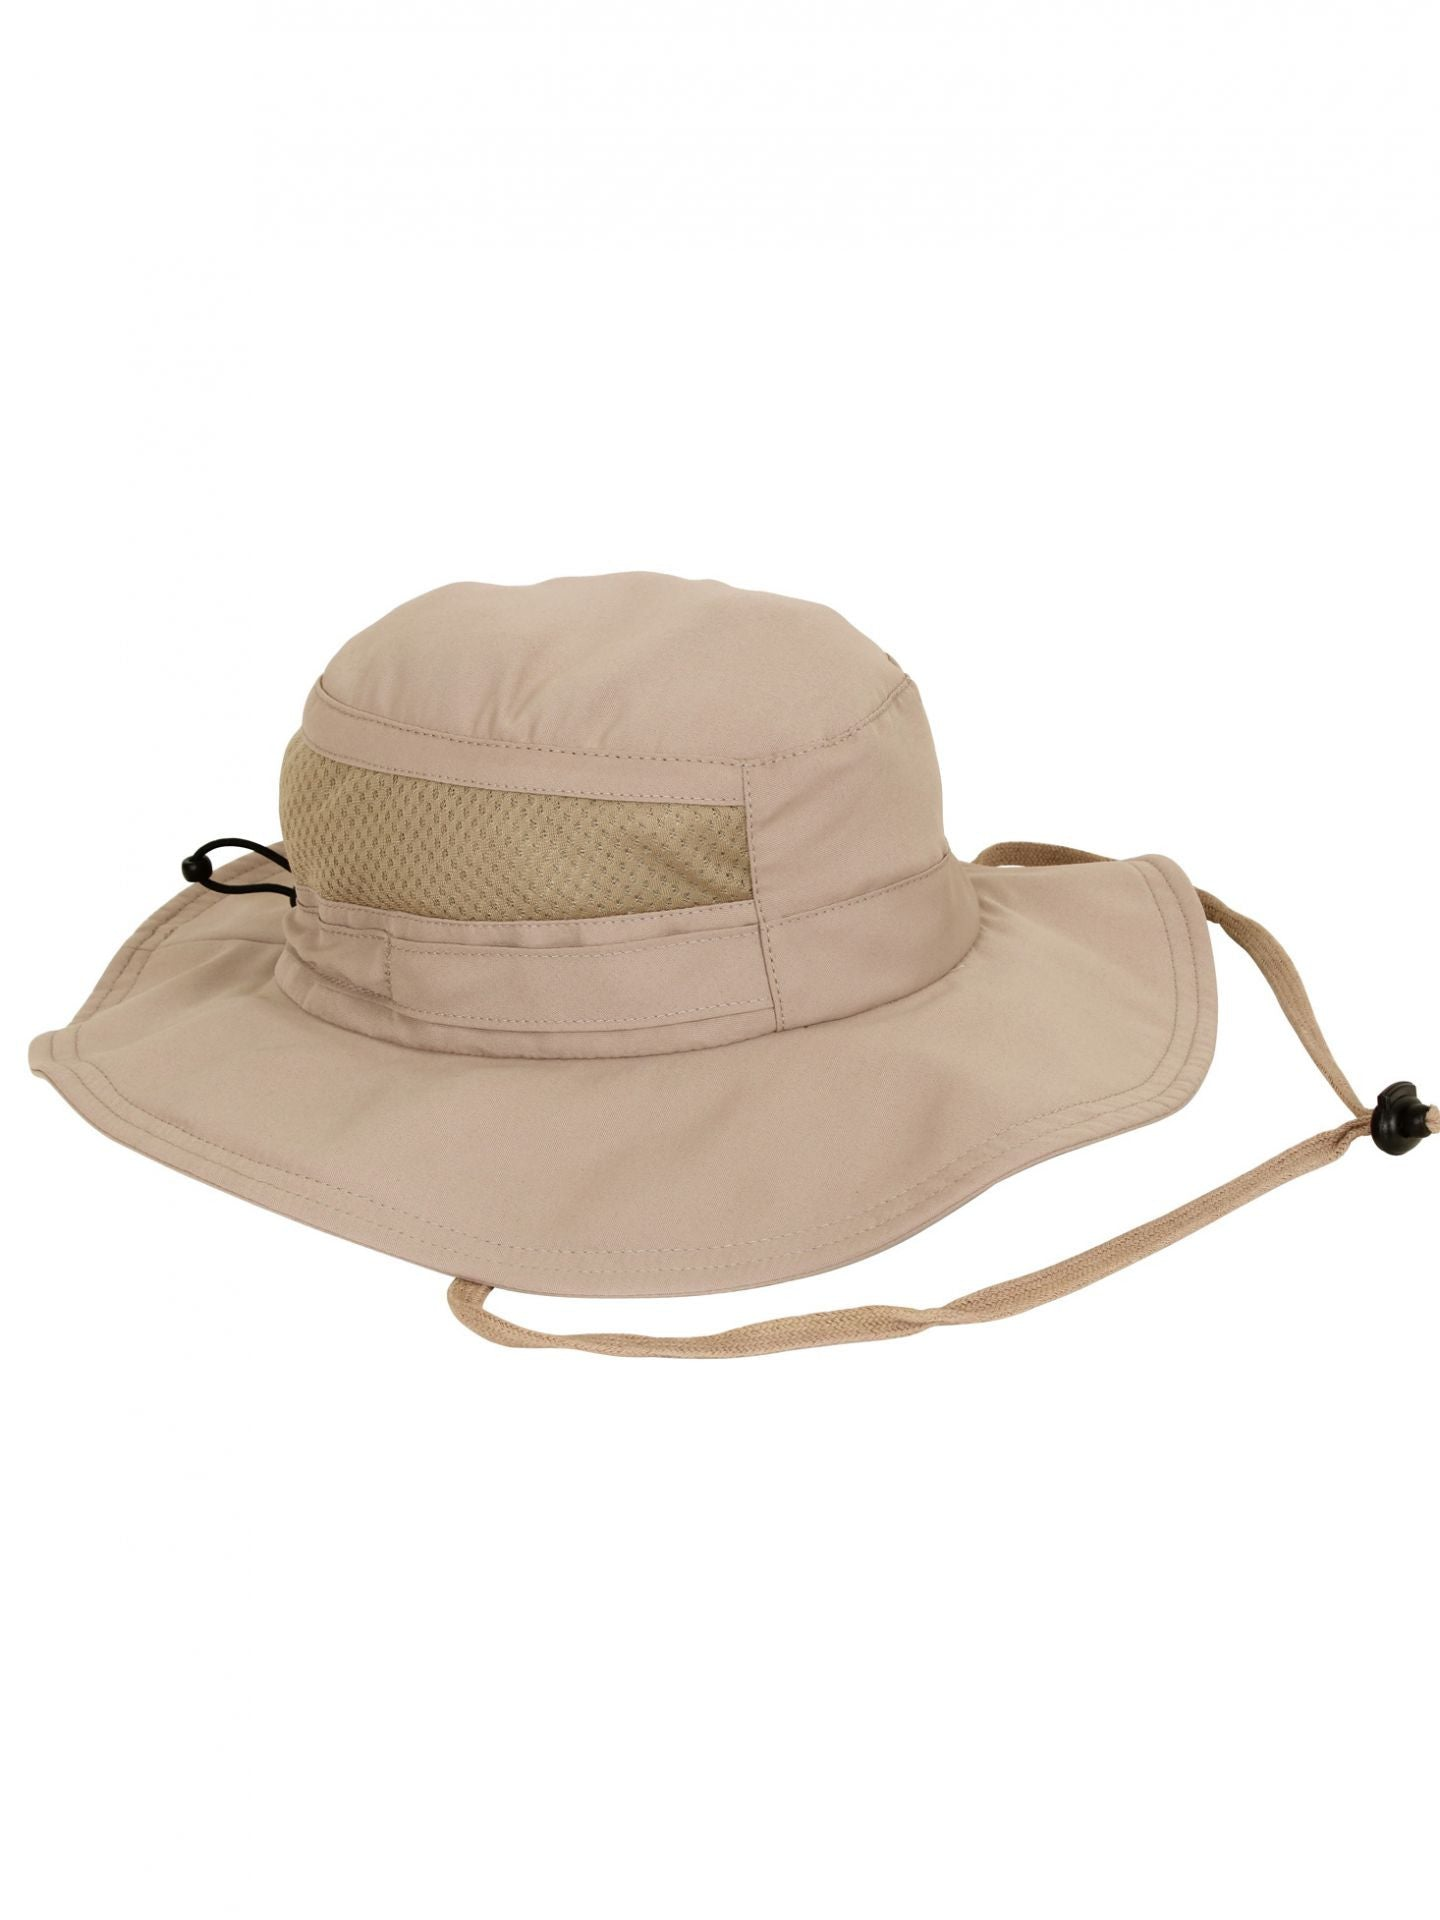 Lightweight Adjustable Mesh Vent Boonie Hat – Harriman Army-Navy acb60c6f05f